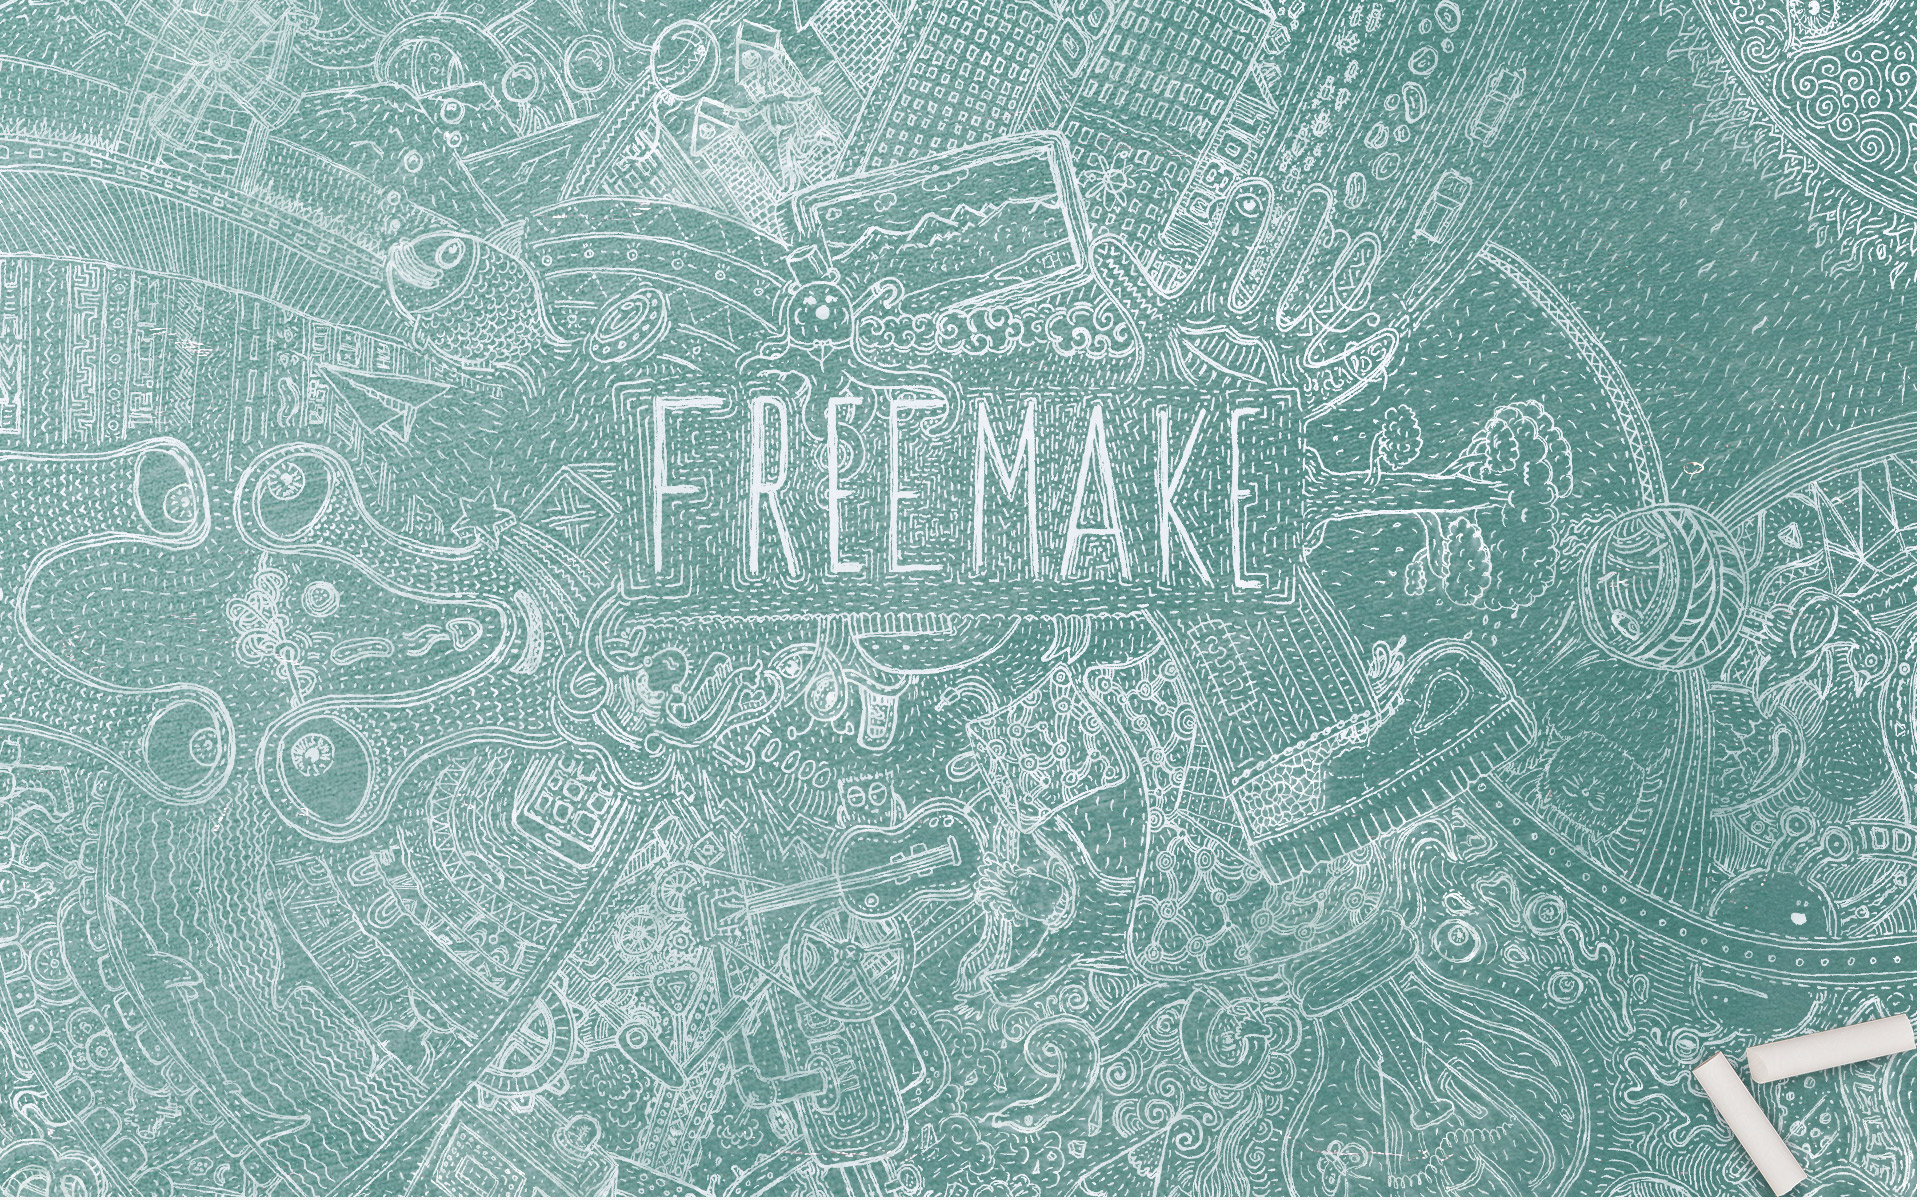 Freemake-Wallpaper-Board-with-chalk-1920x1200